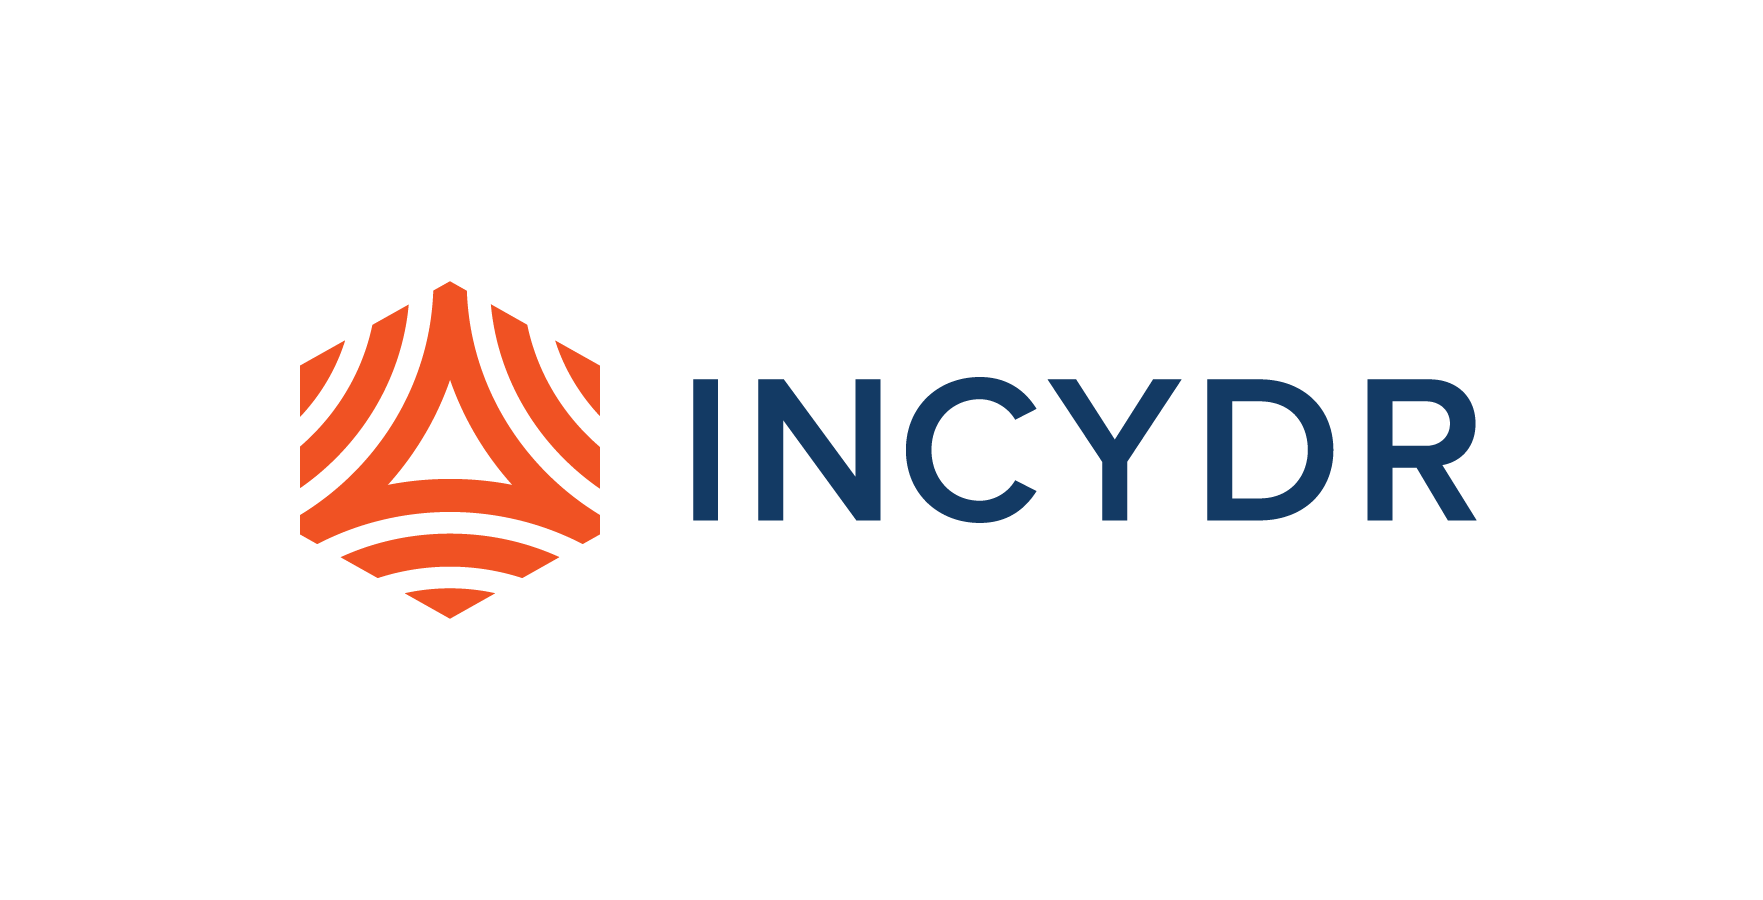 How Code42 Incydr Works